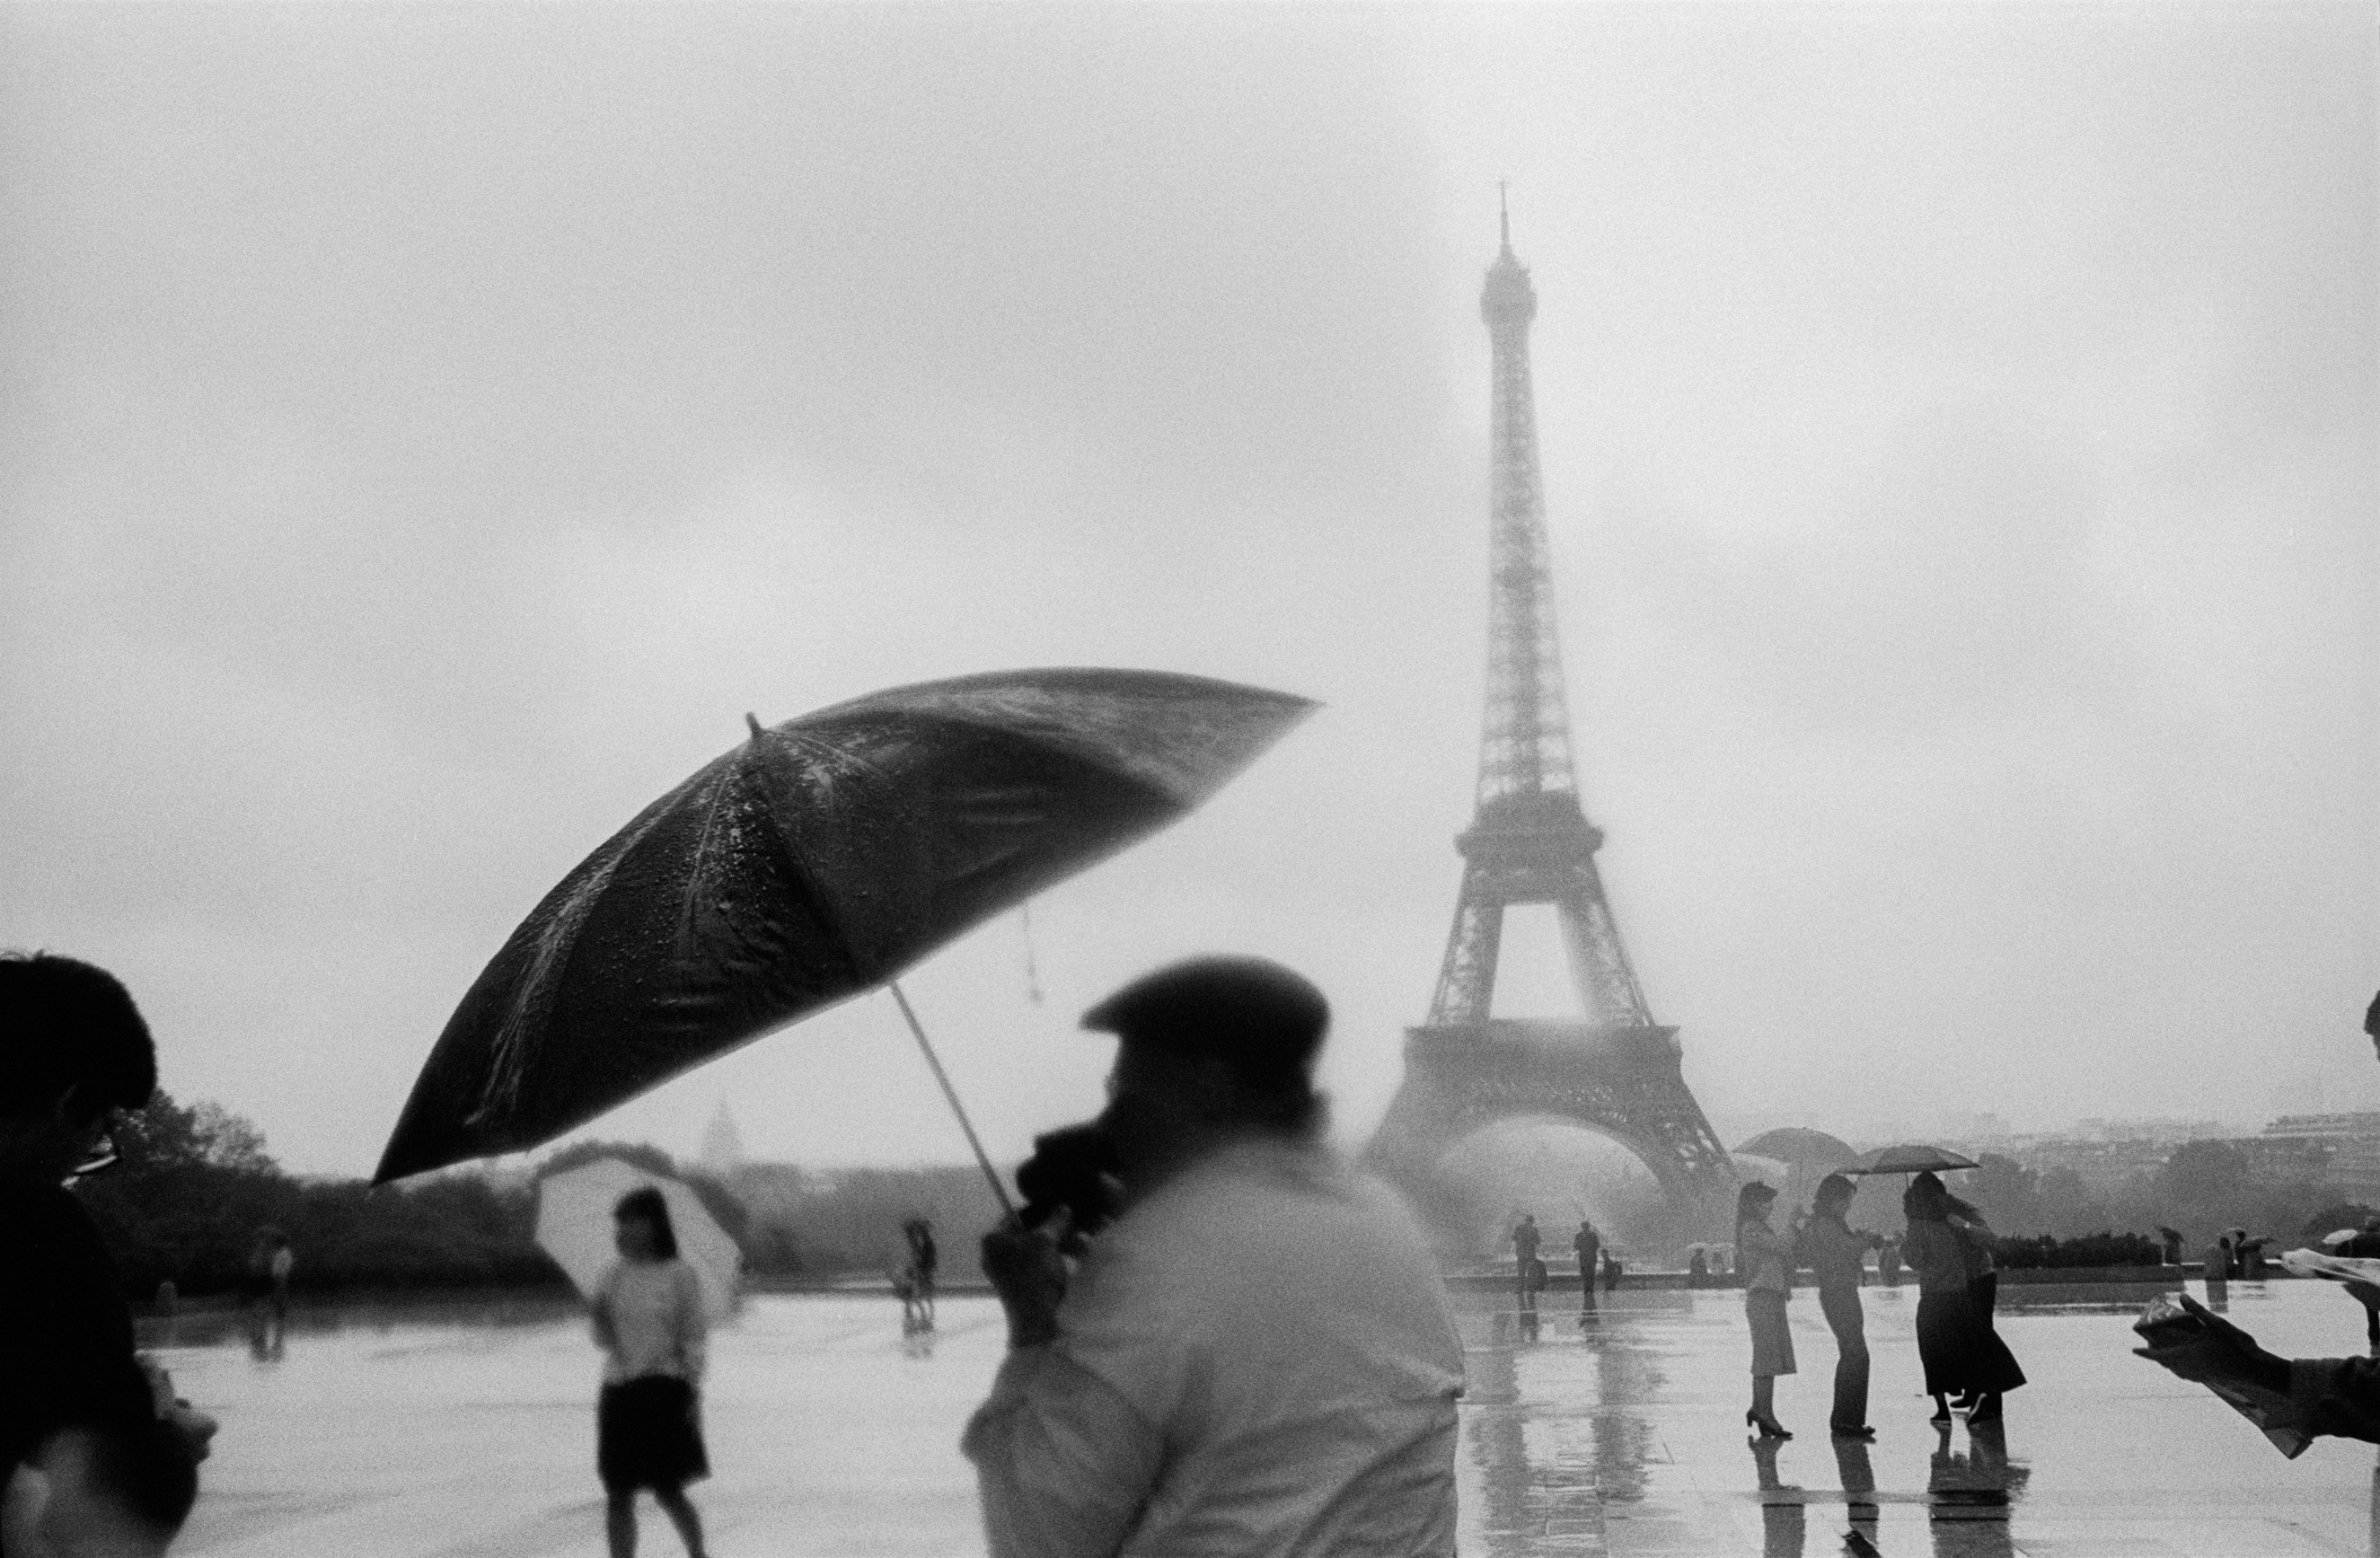 The Eiffel Tower viewed from the Place du Trocadéro in Paris in 1984.